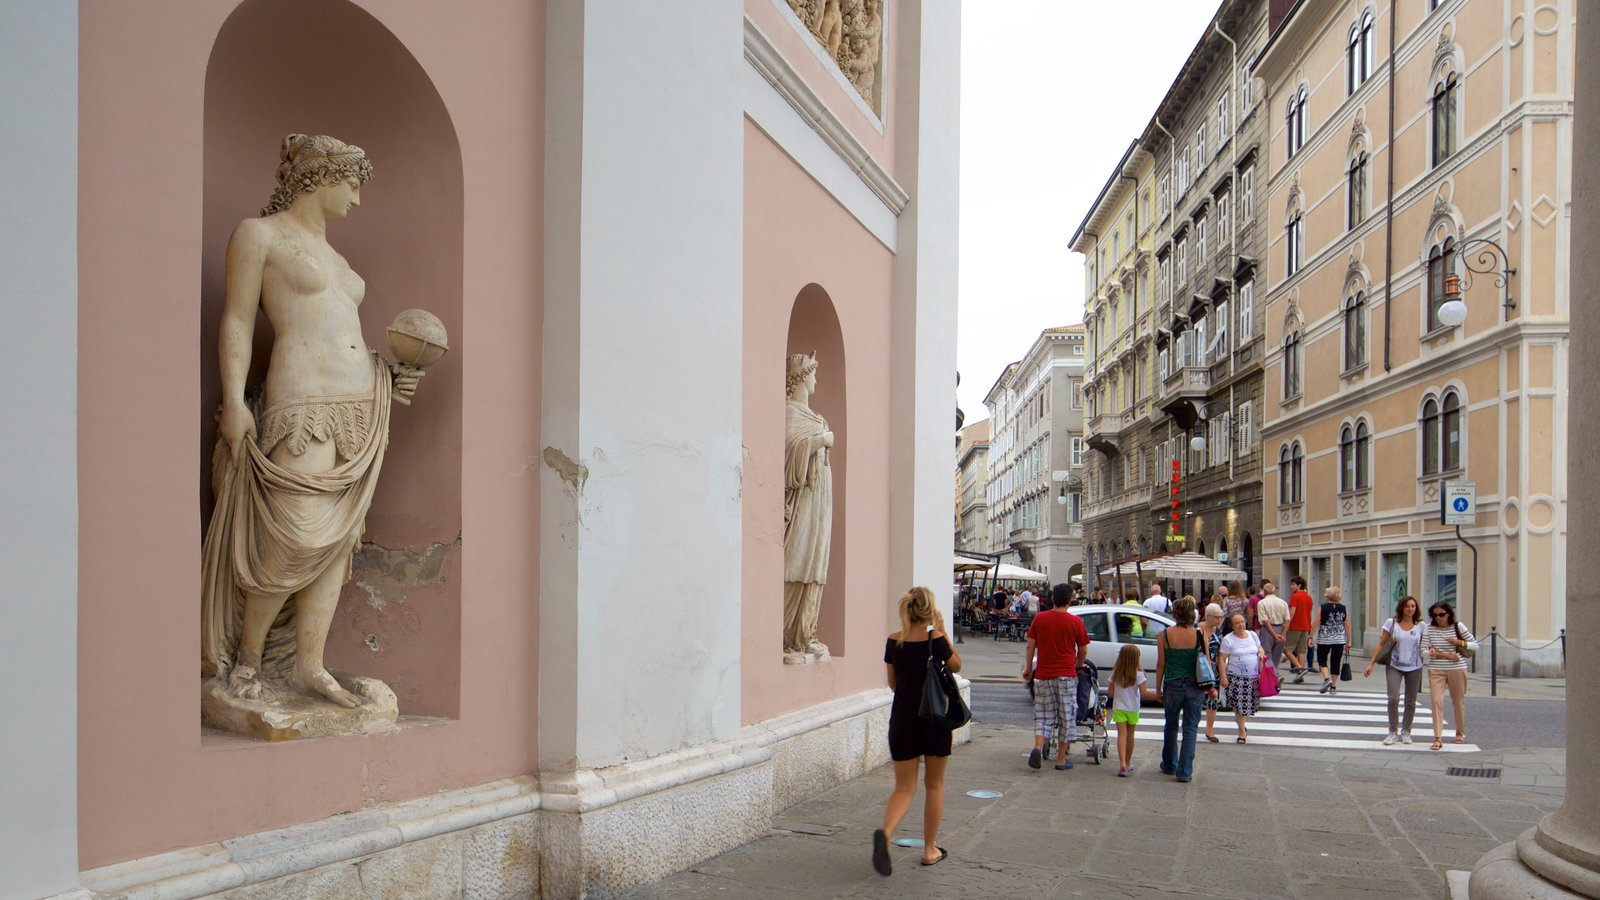 Trieste featuring heritage architecture as well as a large group of people